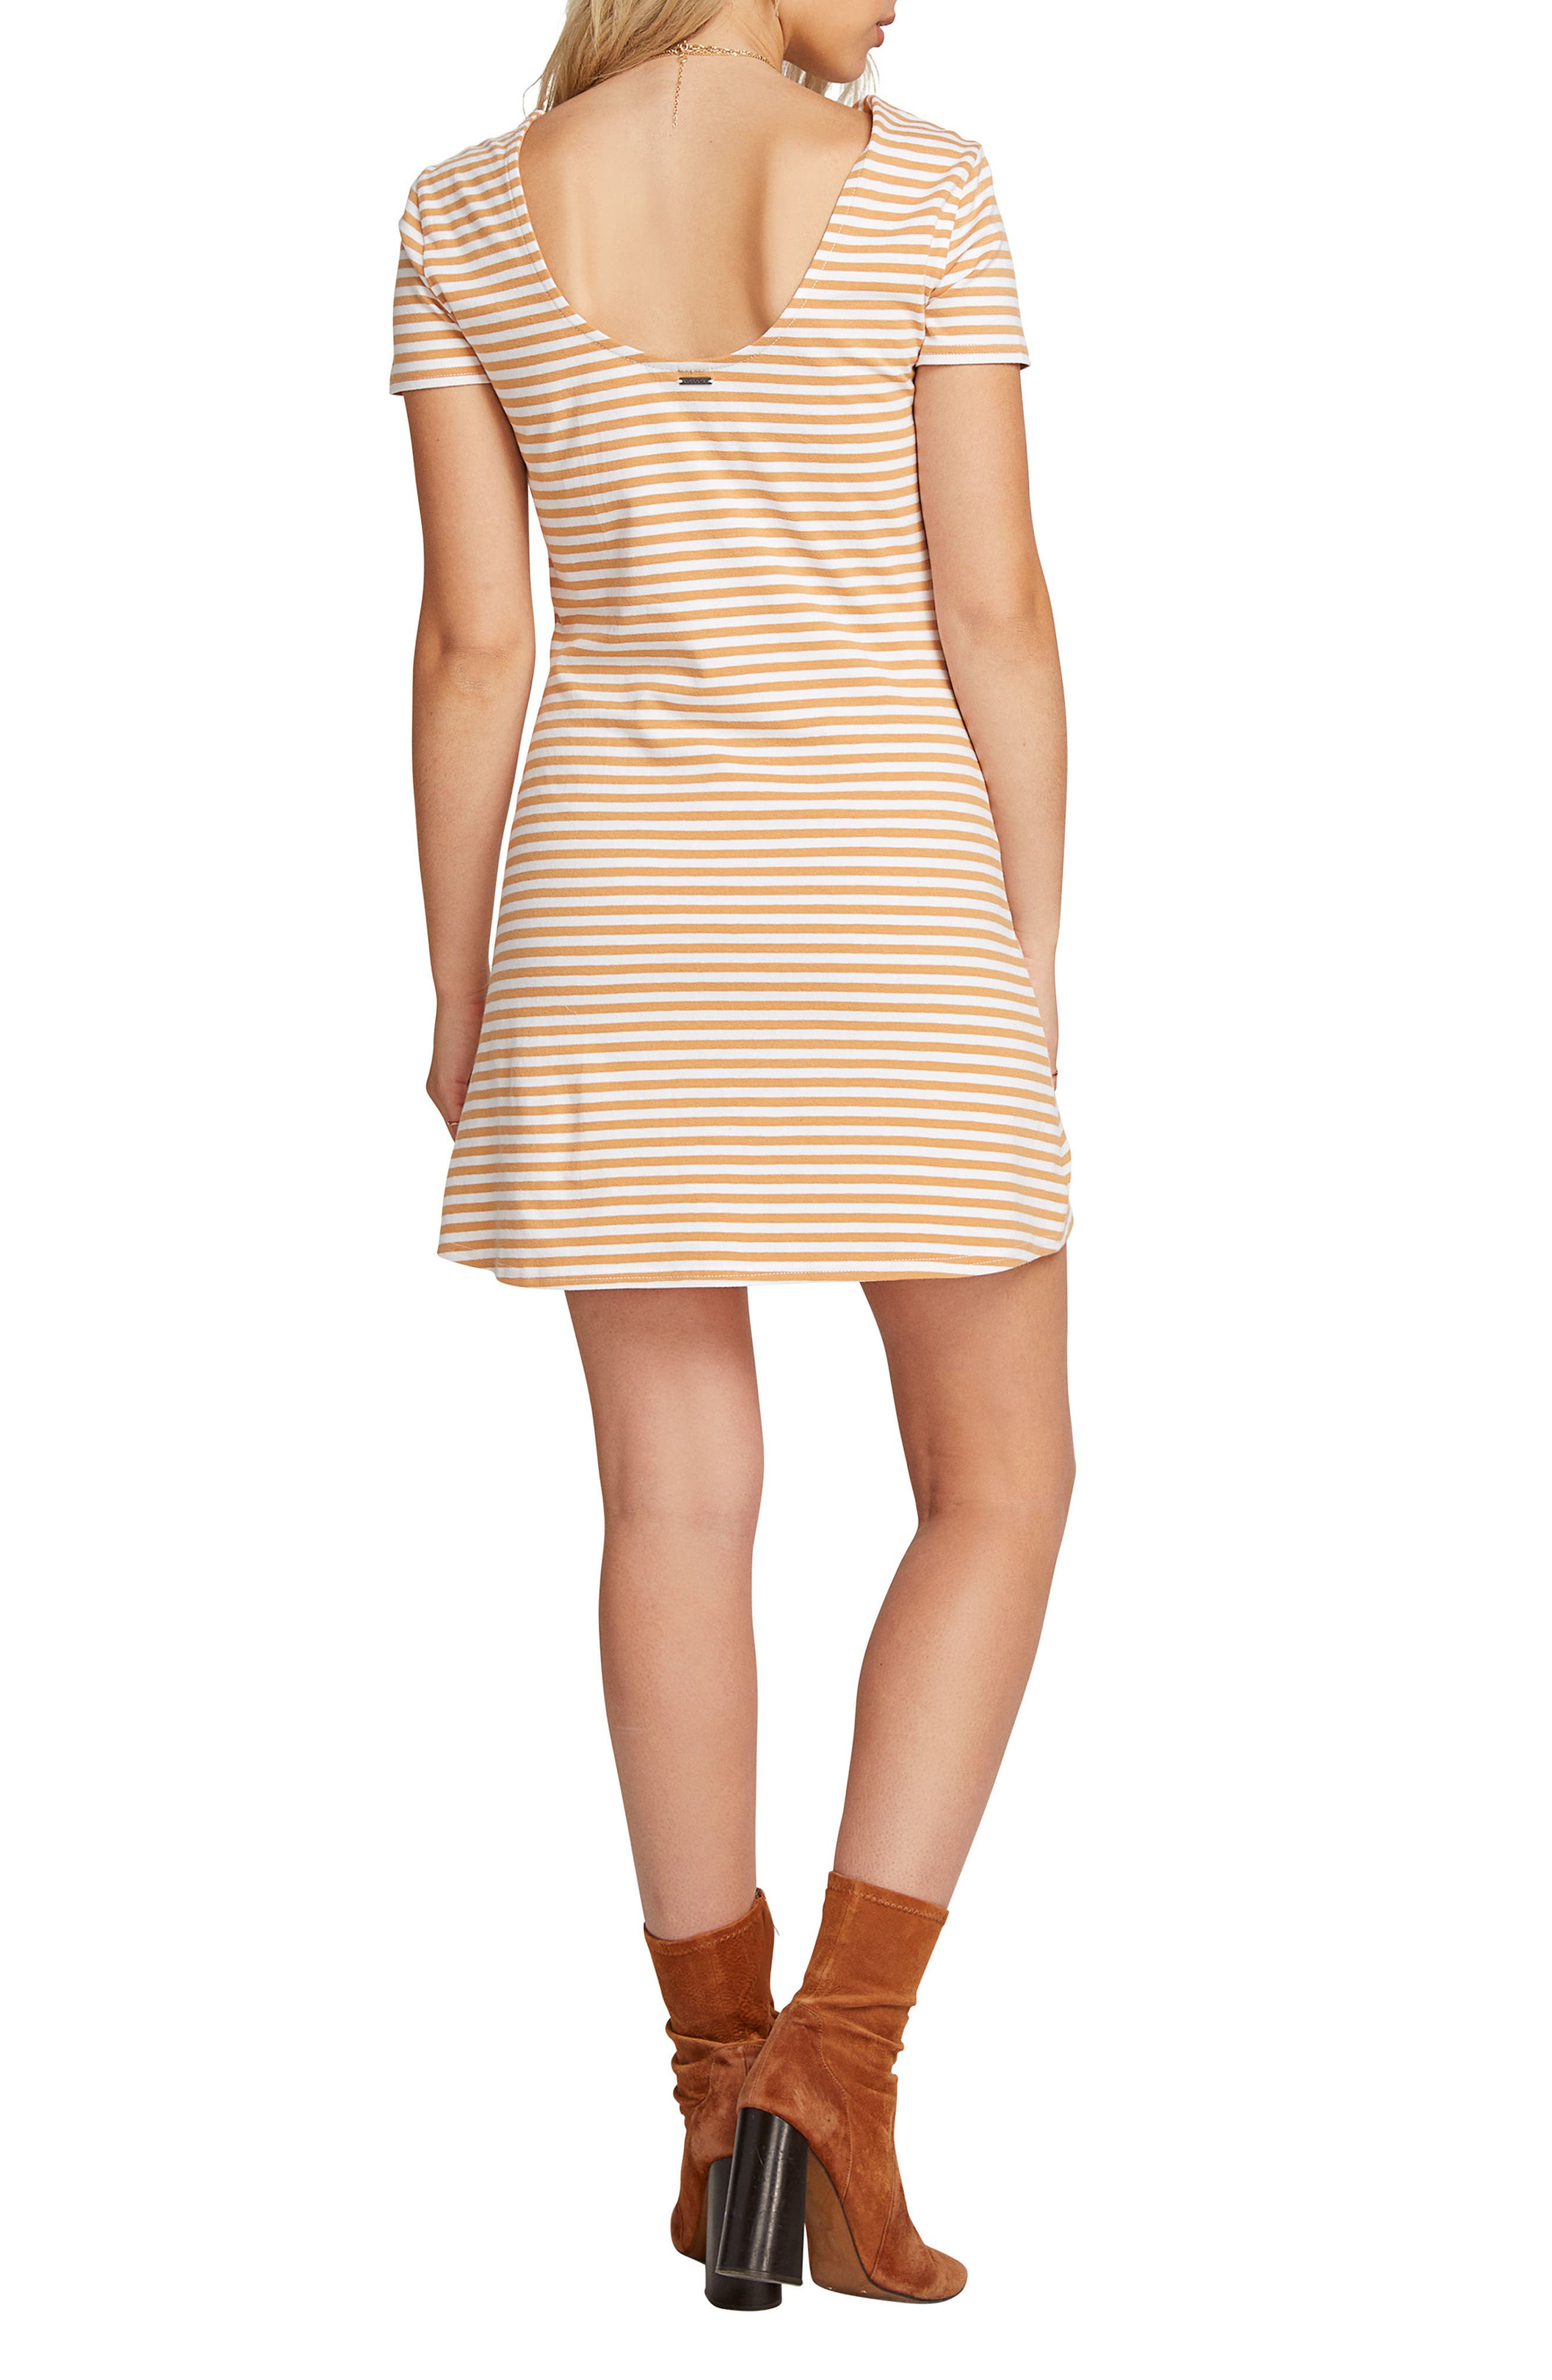 VOLCOM, Looking Out Stripe T-Shirt Dress, Alternate thumbnail 2, color, 250